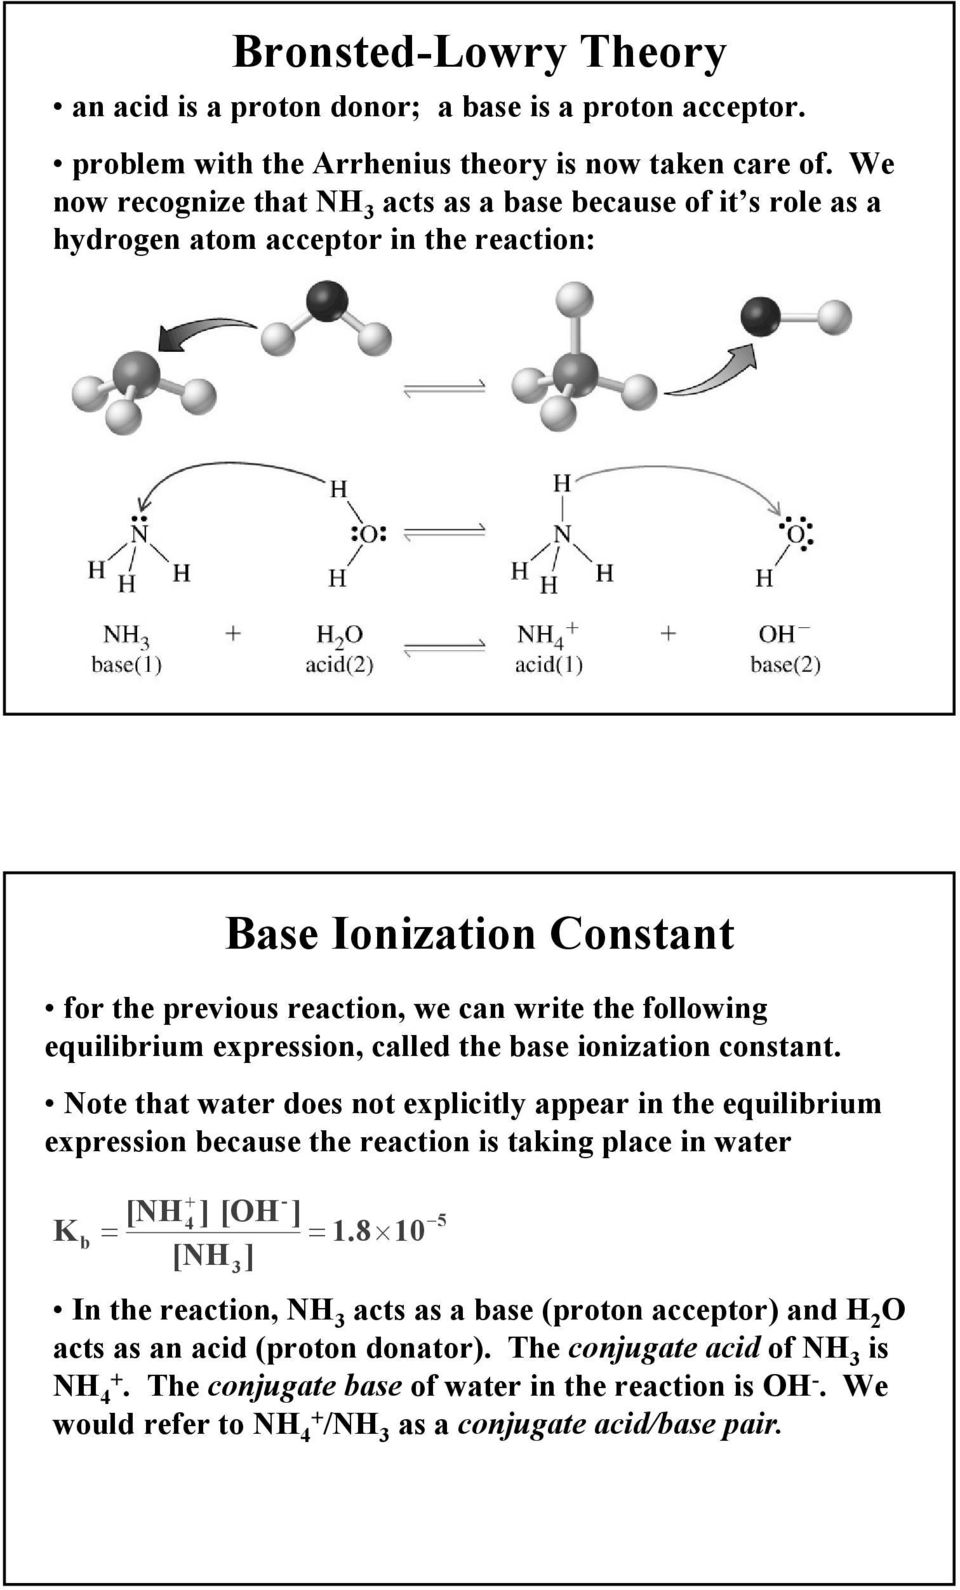 equilibrium expression, called the base ionization constant.